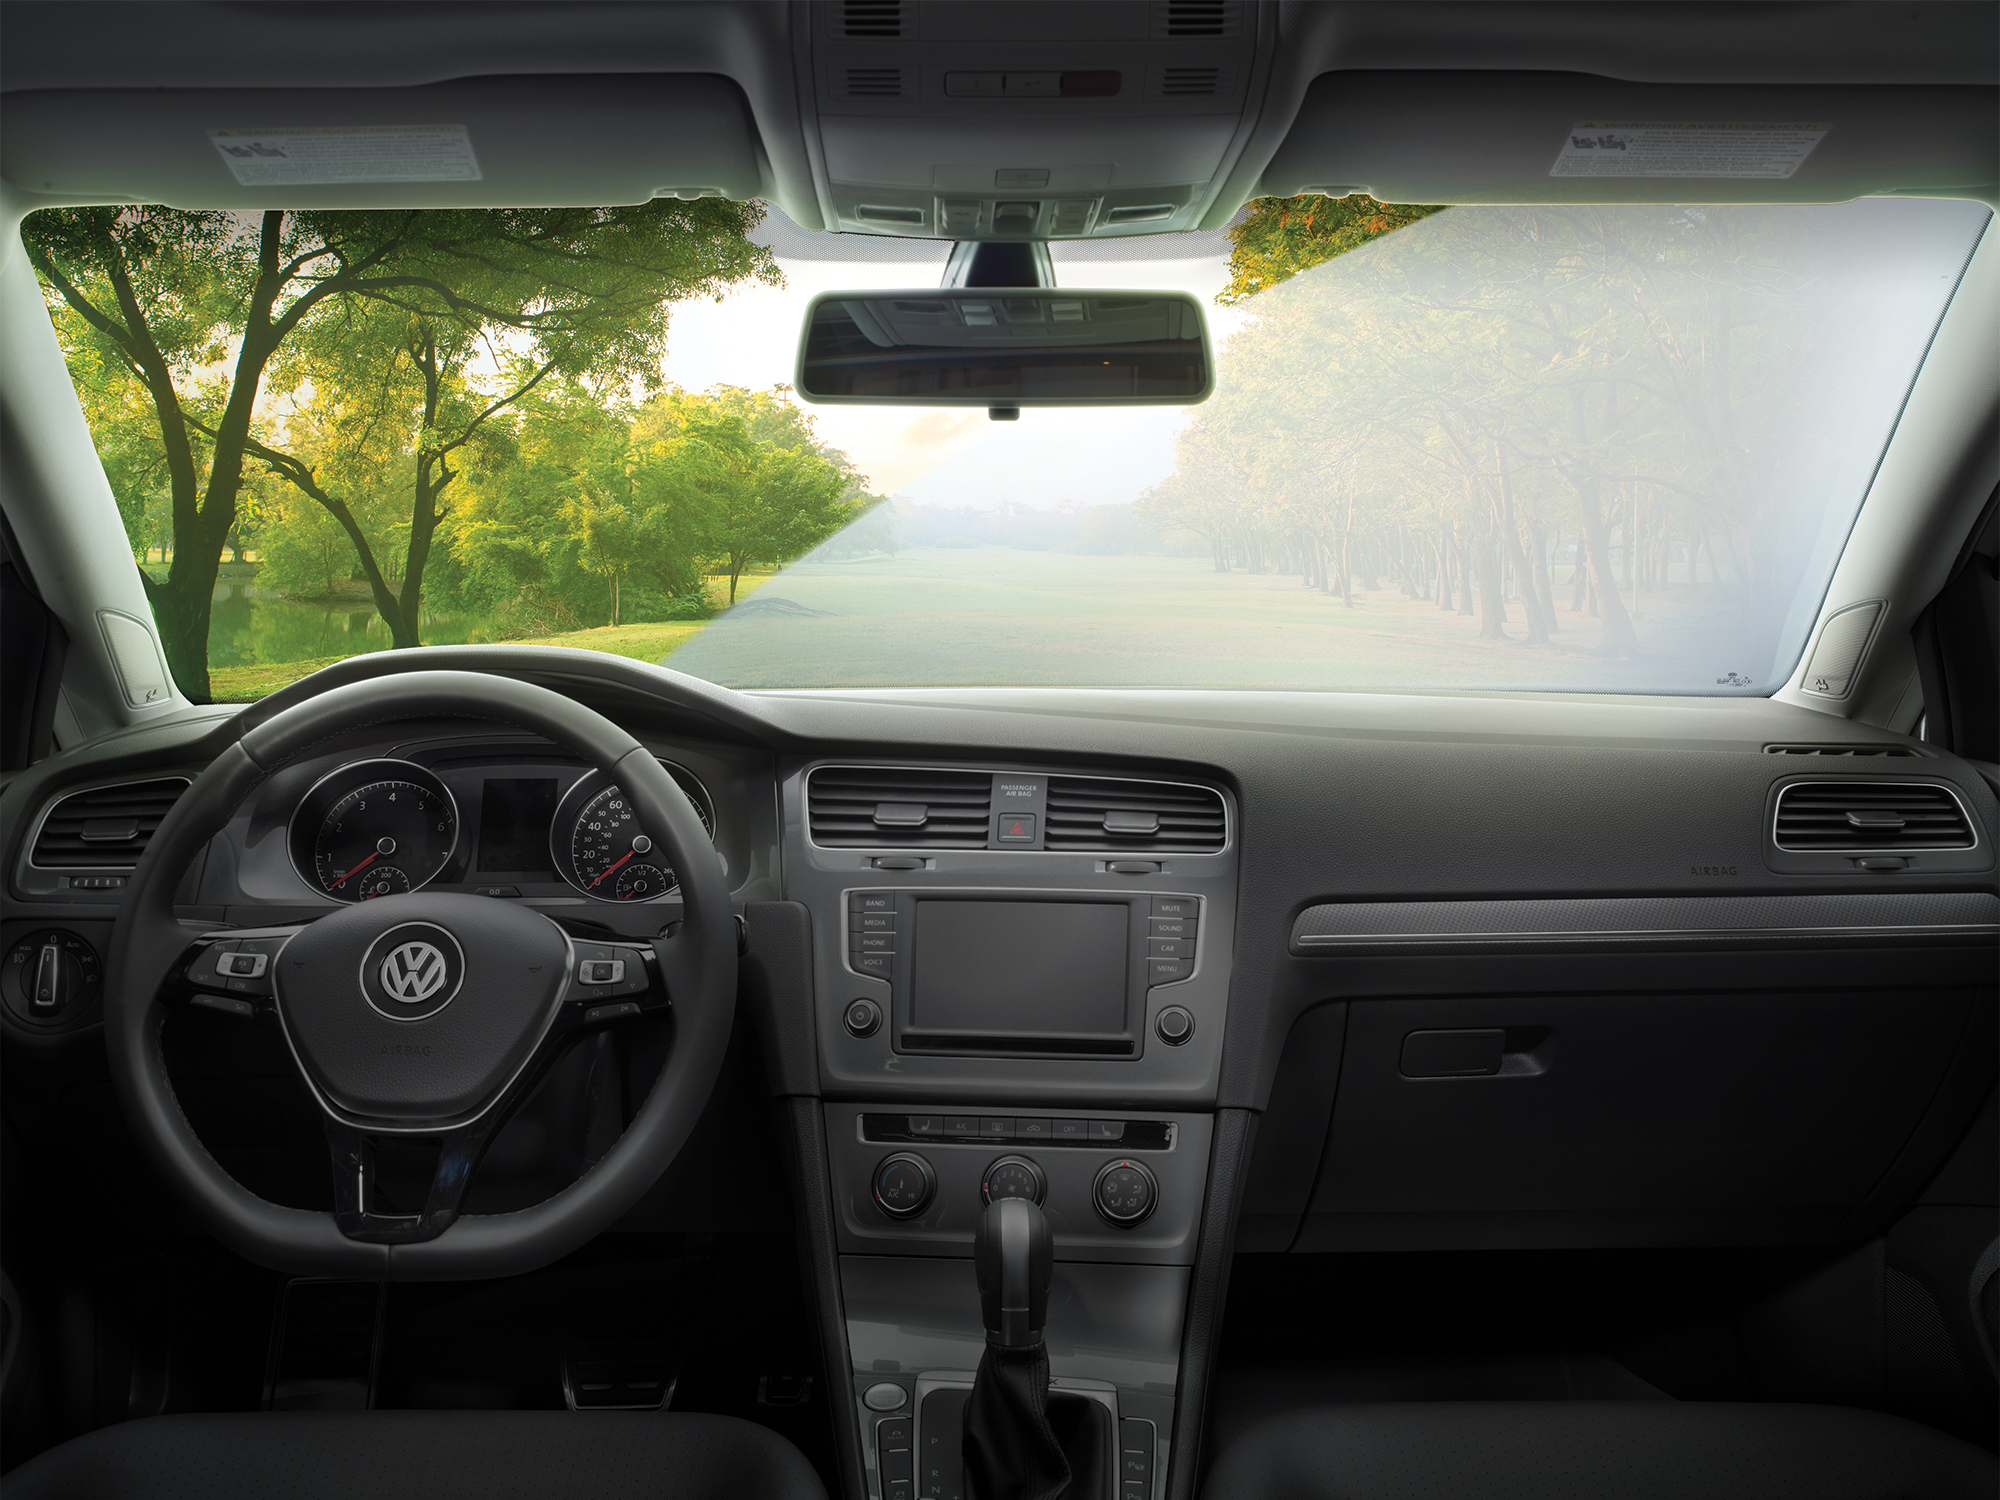 Interior Glass Cleaner leaves a streak-free shine on your windshield and helps prevent fogging and future dust build up.